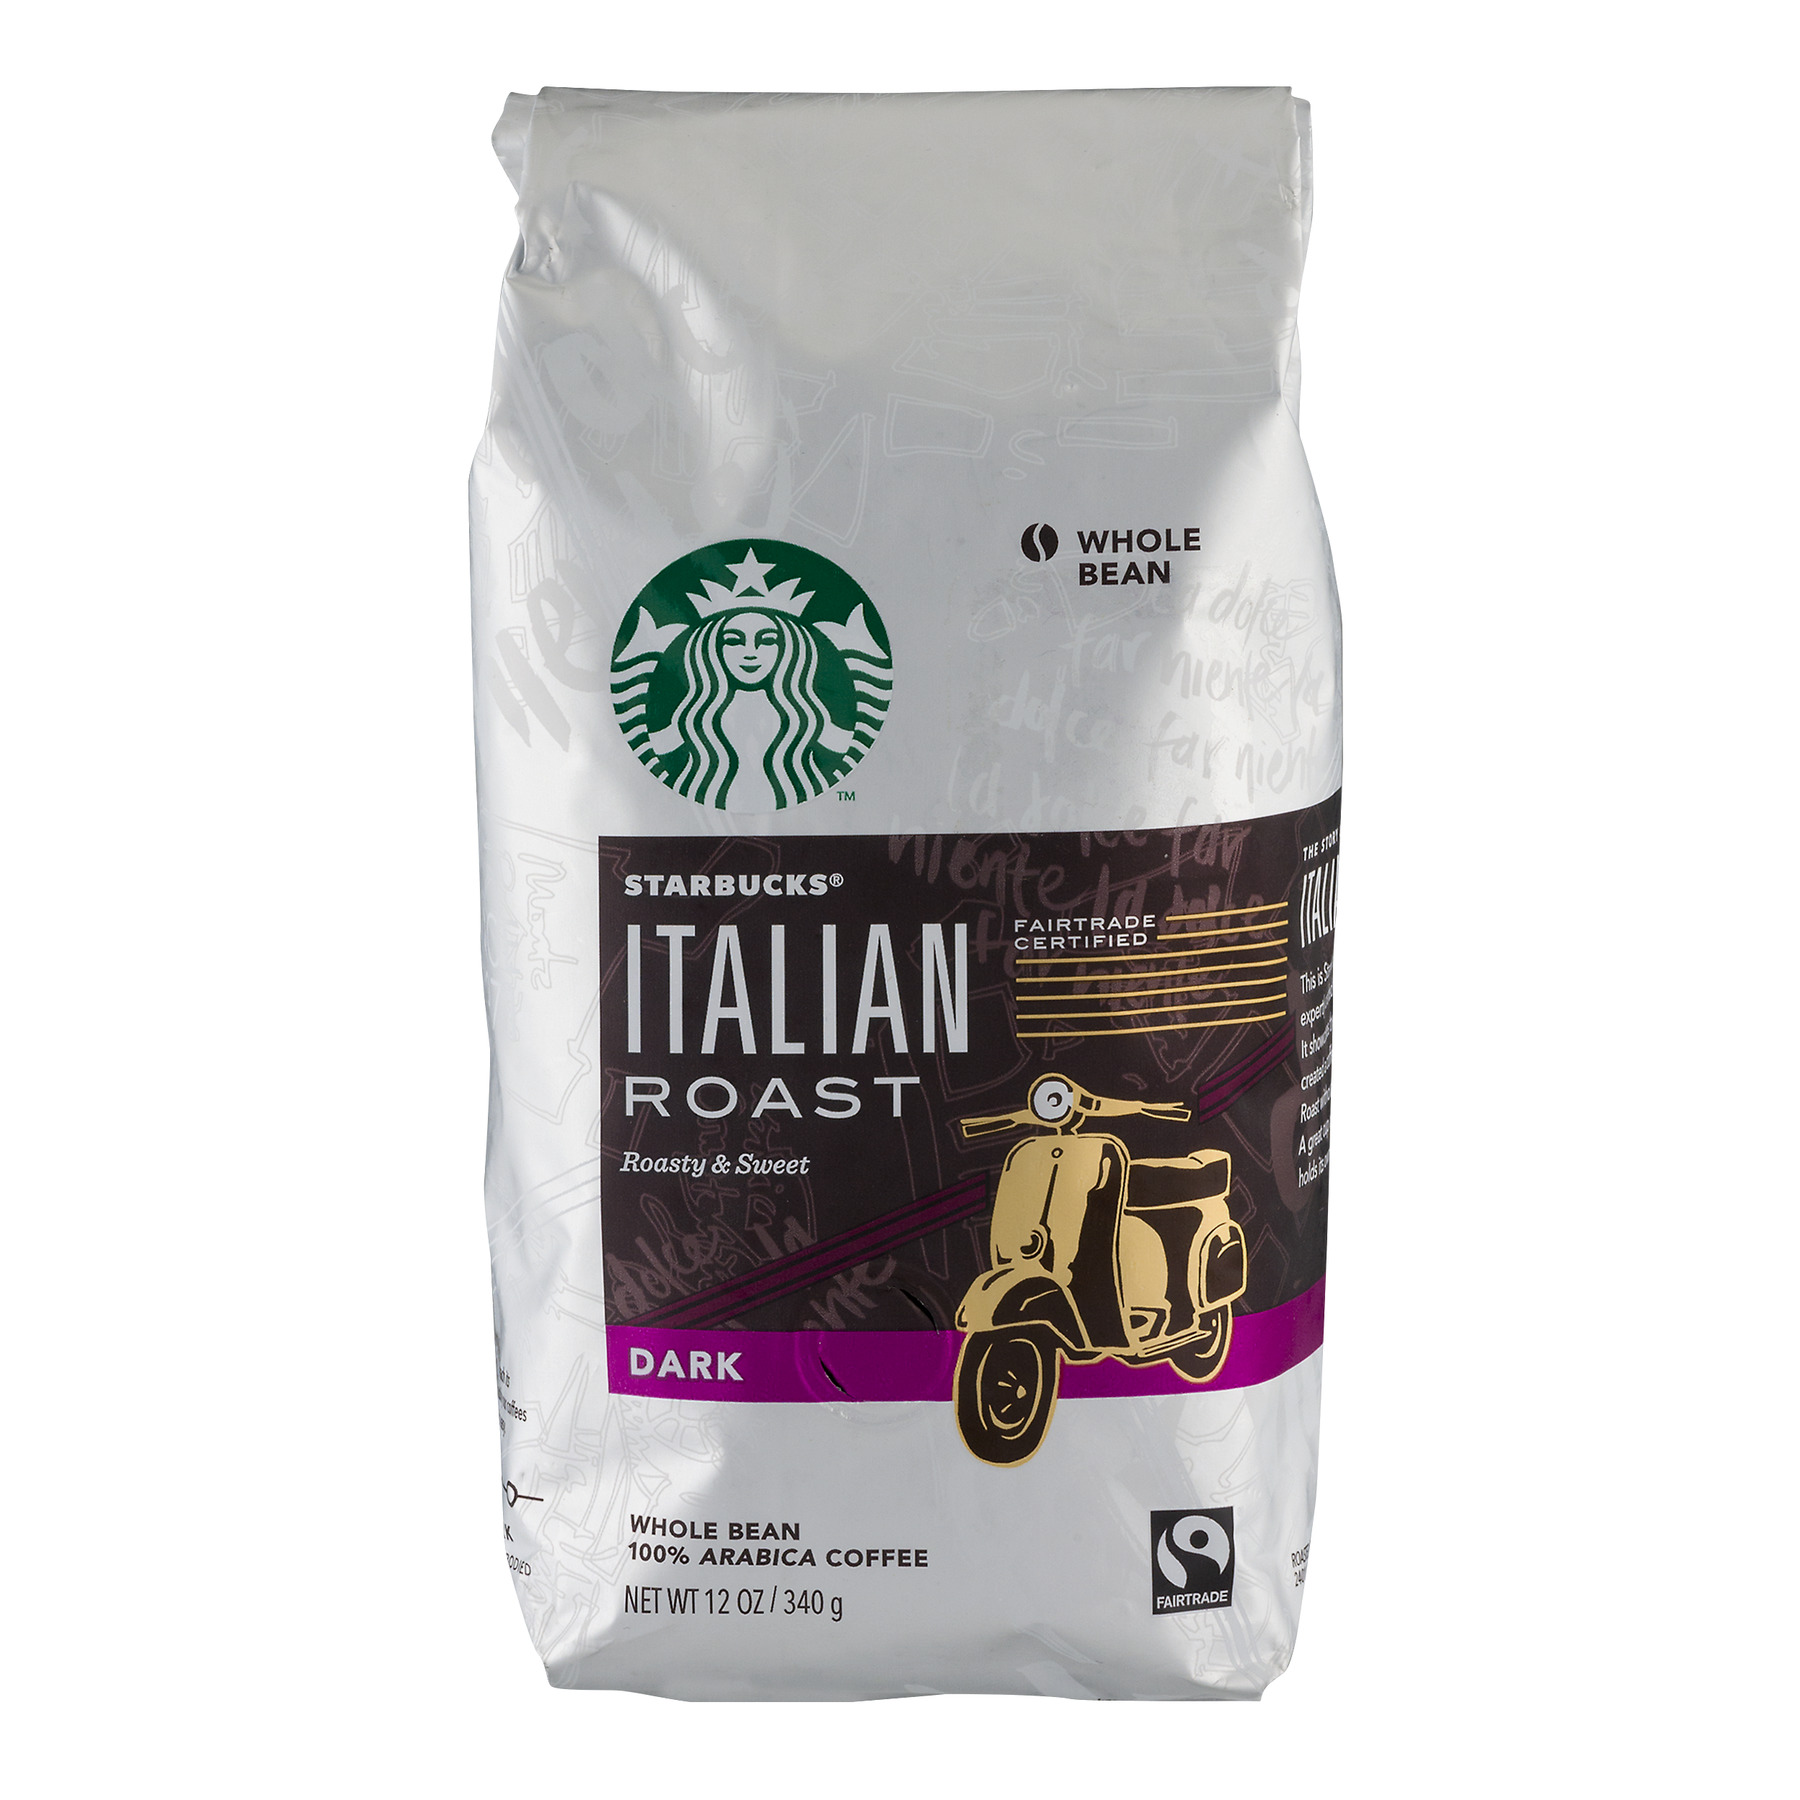 Starbucks Italian Roast Dark Whole Bean Coffee, 12.0 OZ